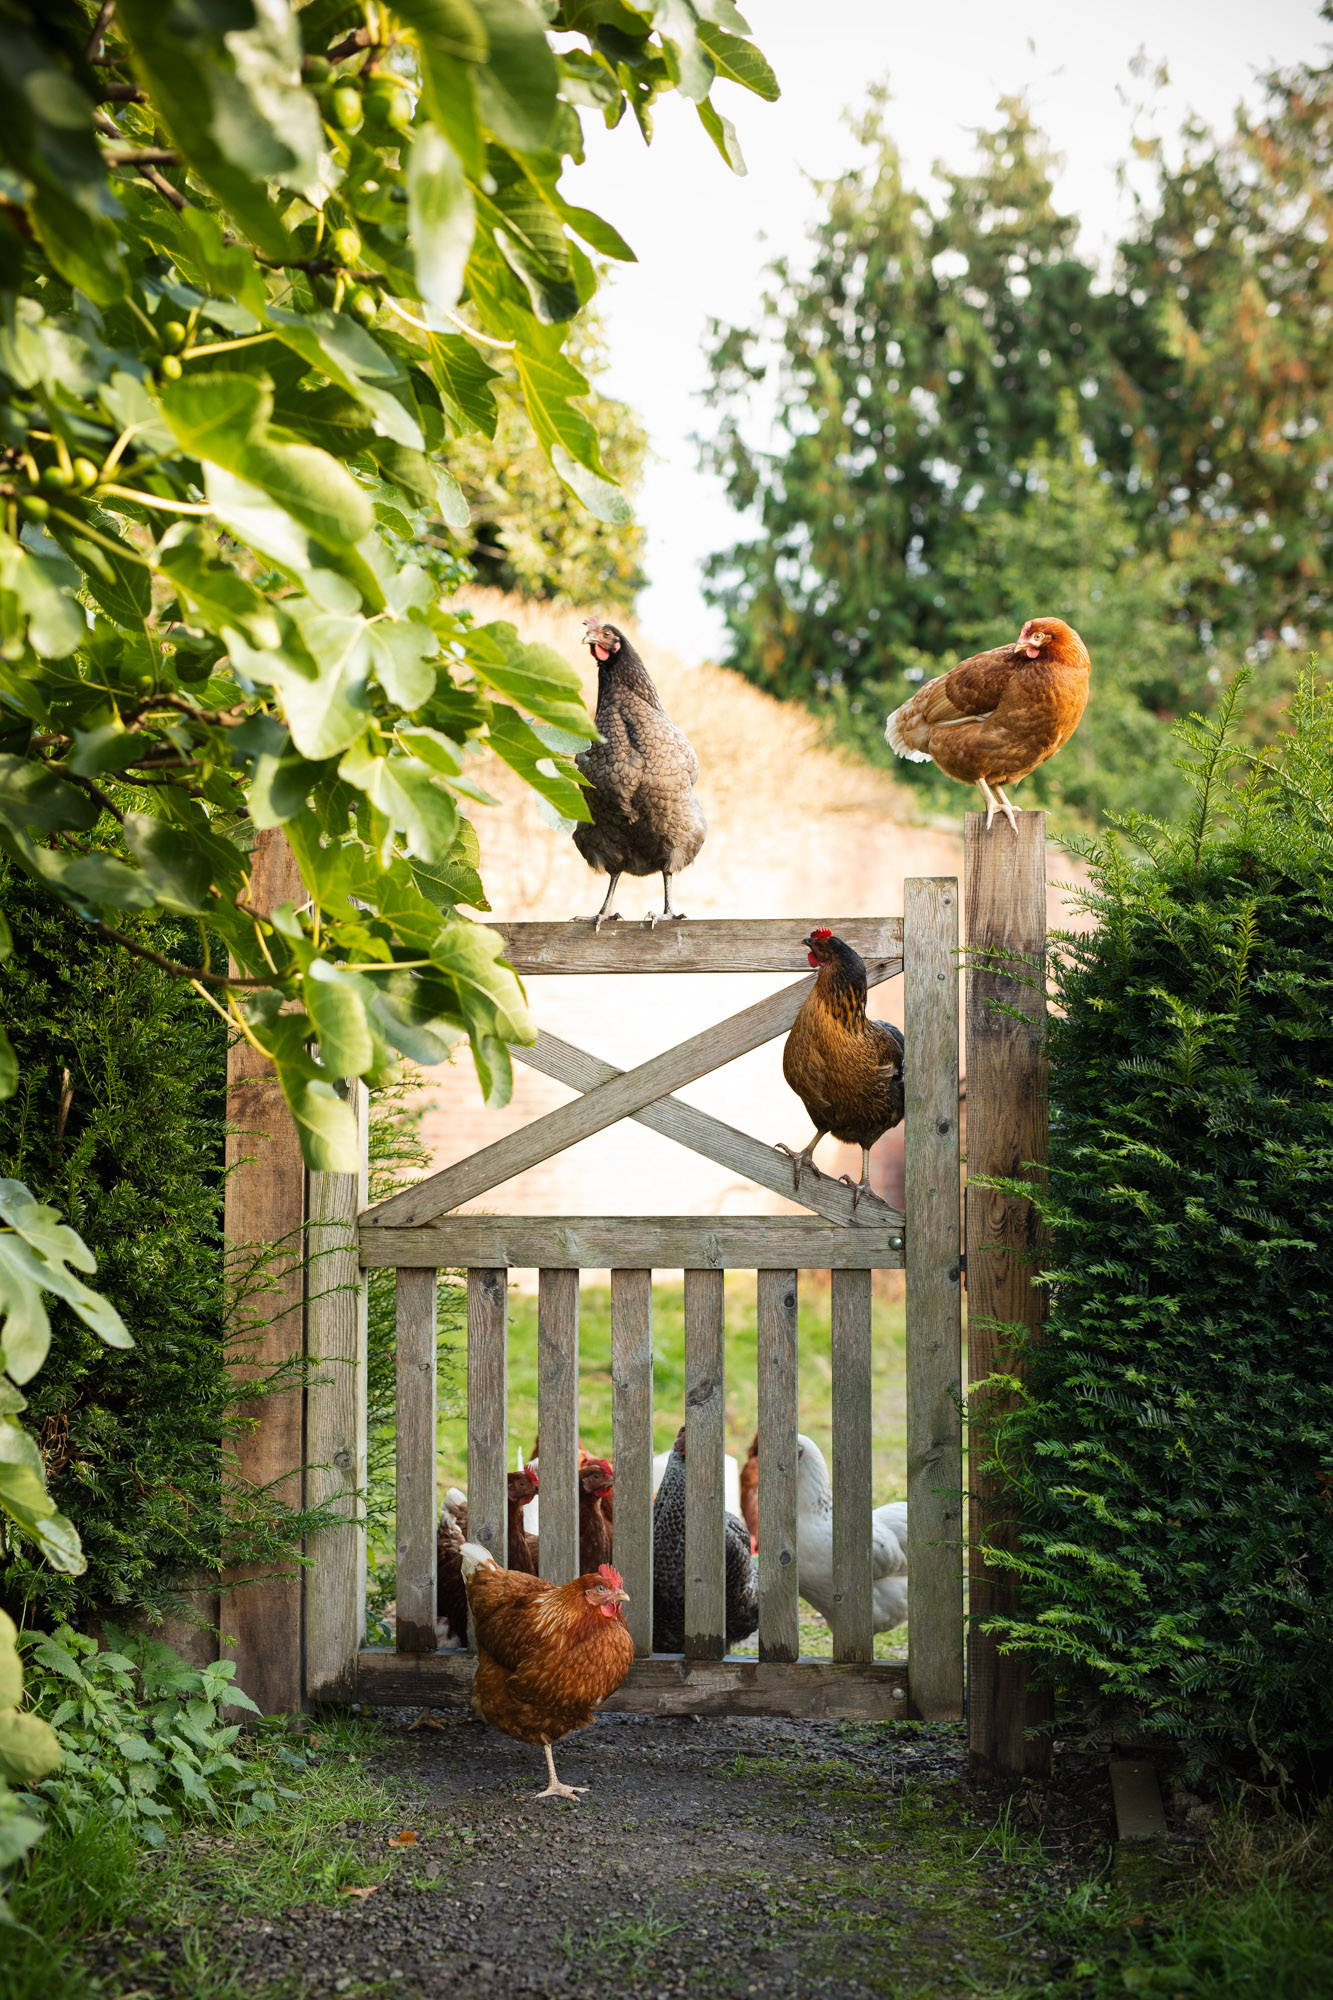 Chickens climbing over a gate